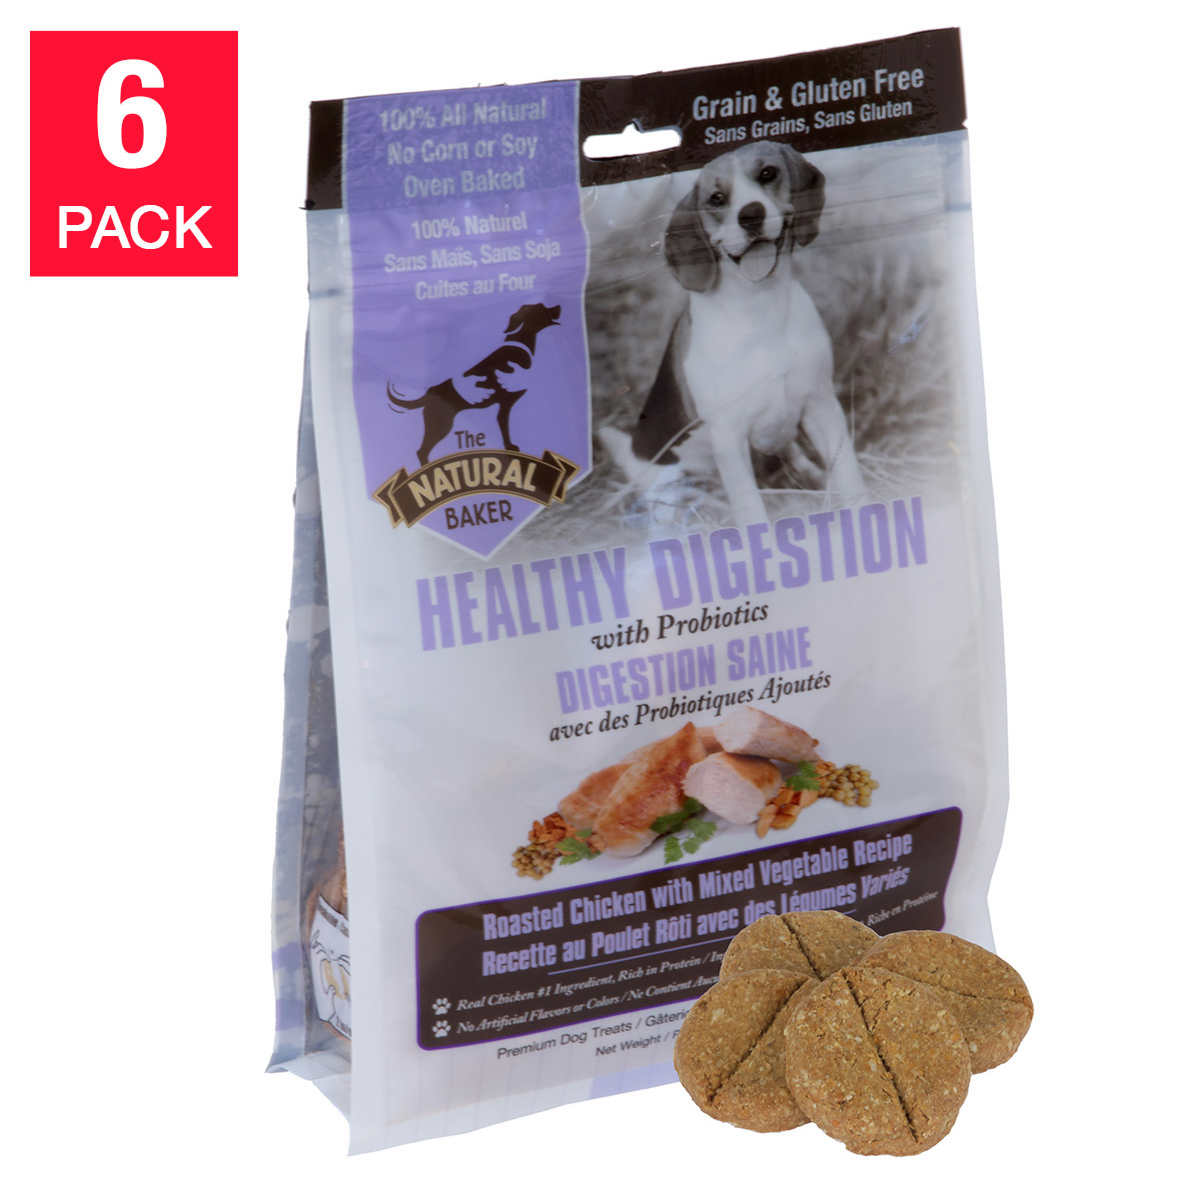 The natural baker healthy digestion dog treats with probiotics 6 pack 1 1 forumfinder Images